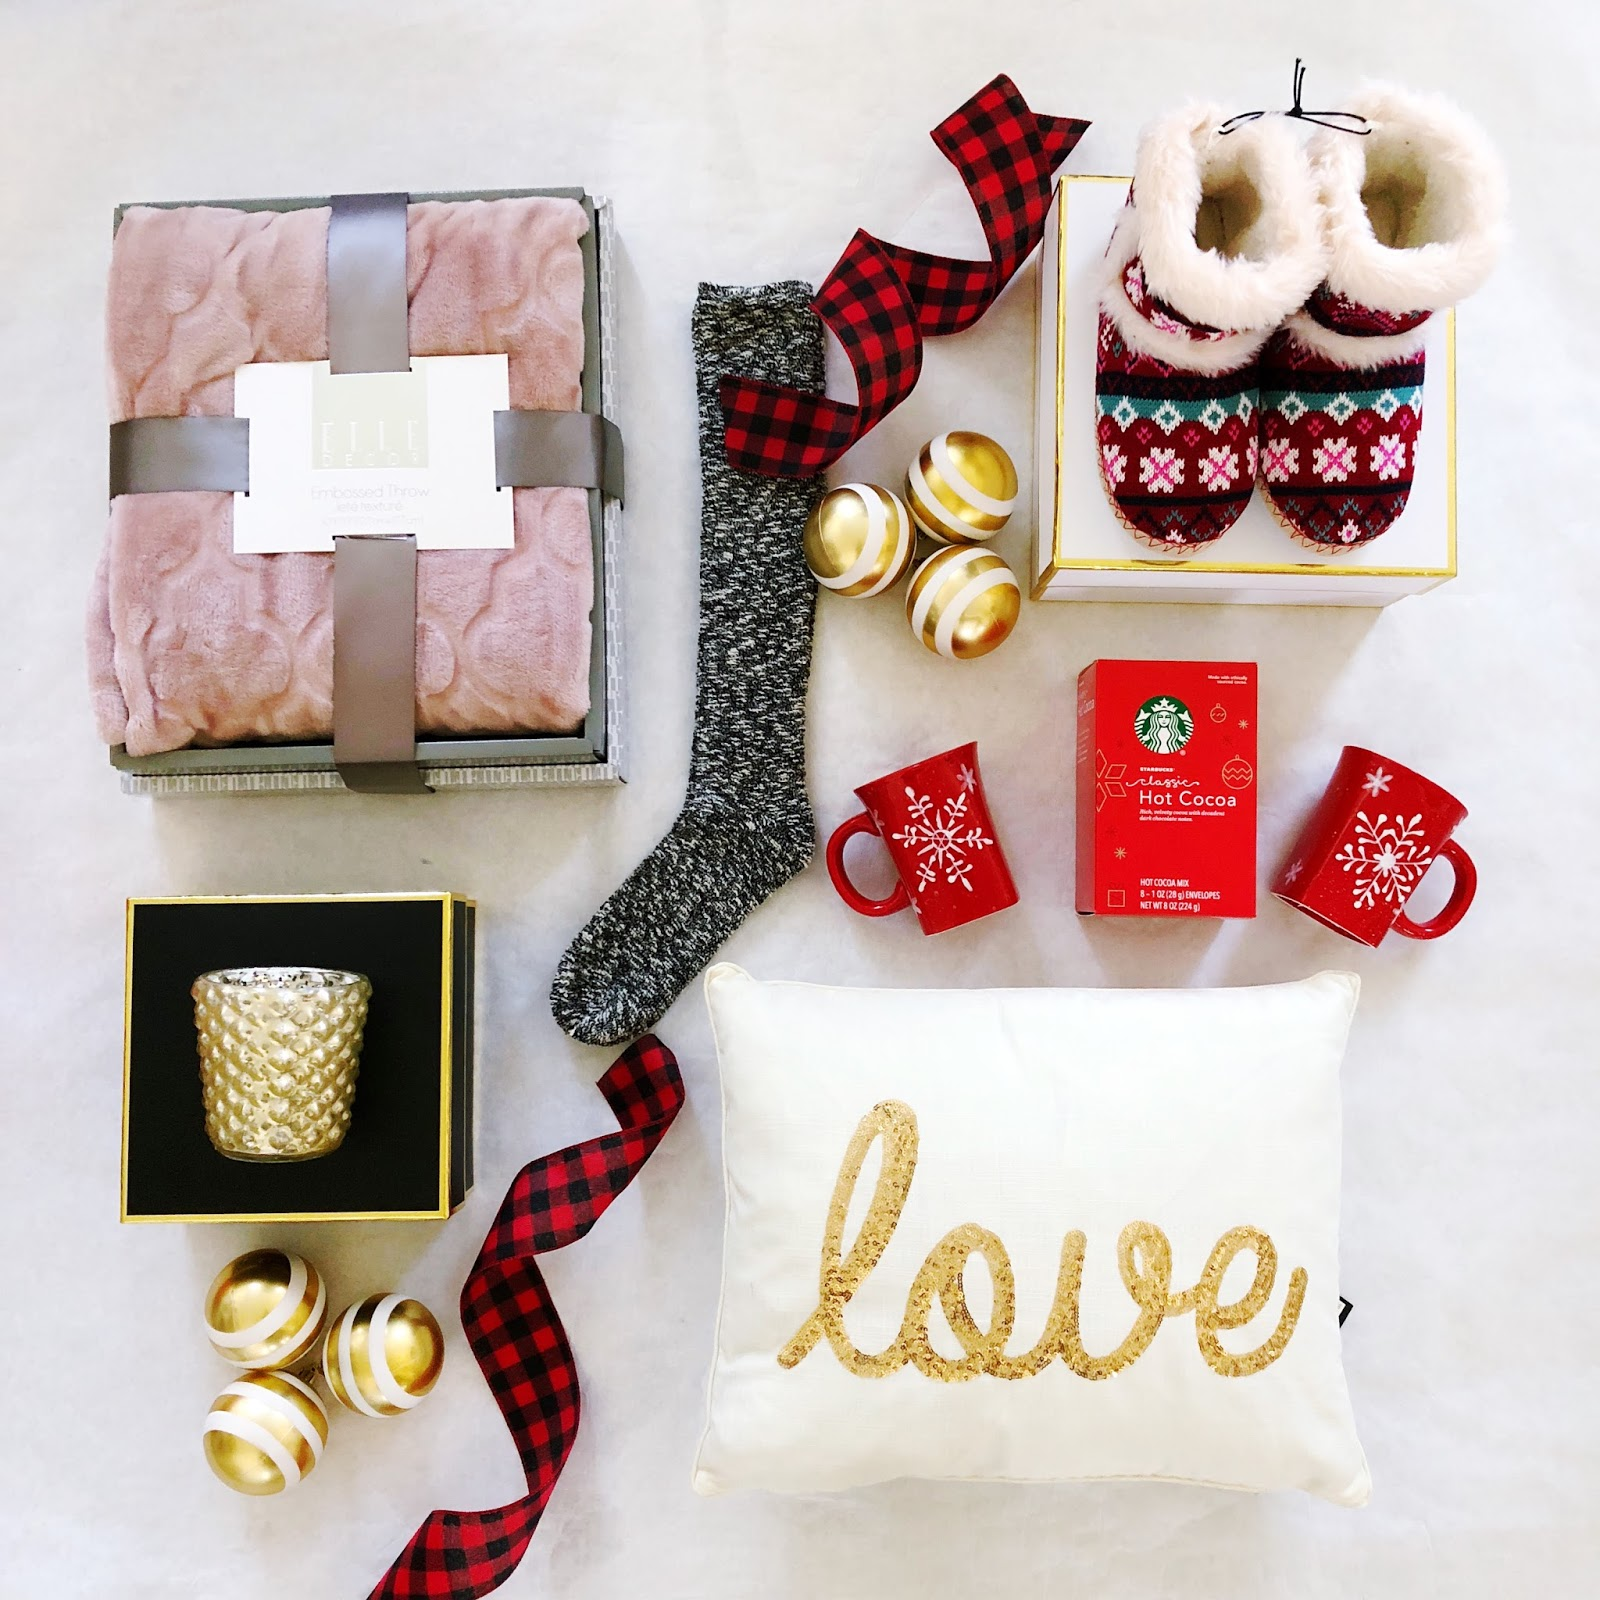 Christmas gifts for dad 2019 uk